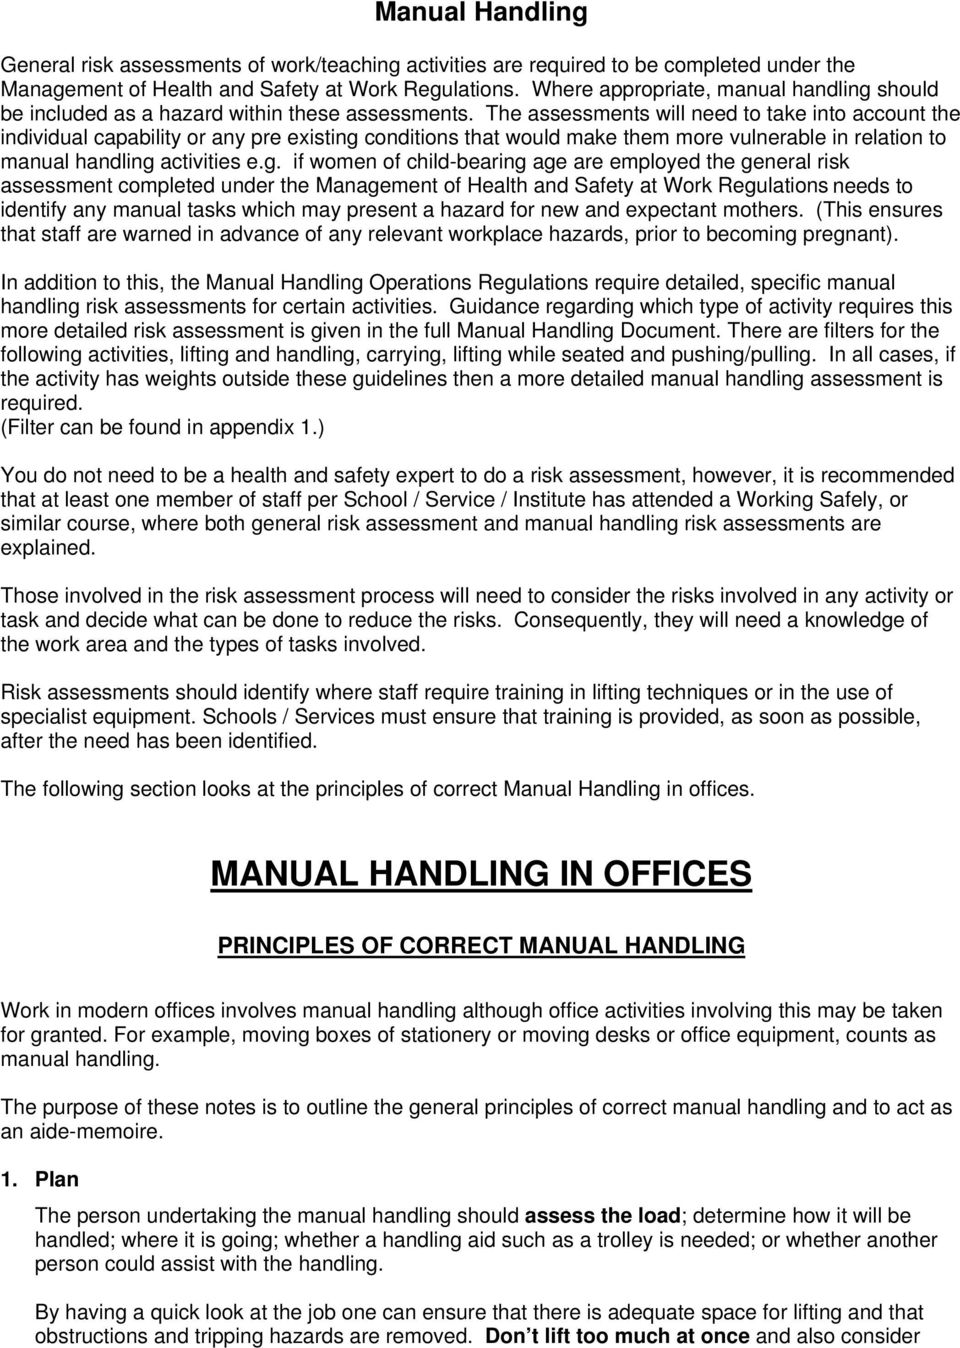 Manual handling in offices pdf the assessments will need to take into account the individual capability or any pre existing maxwellsz